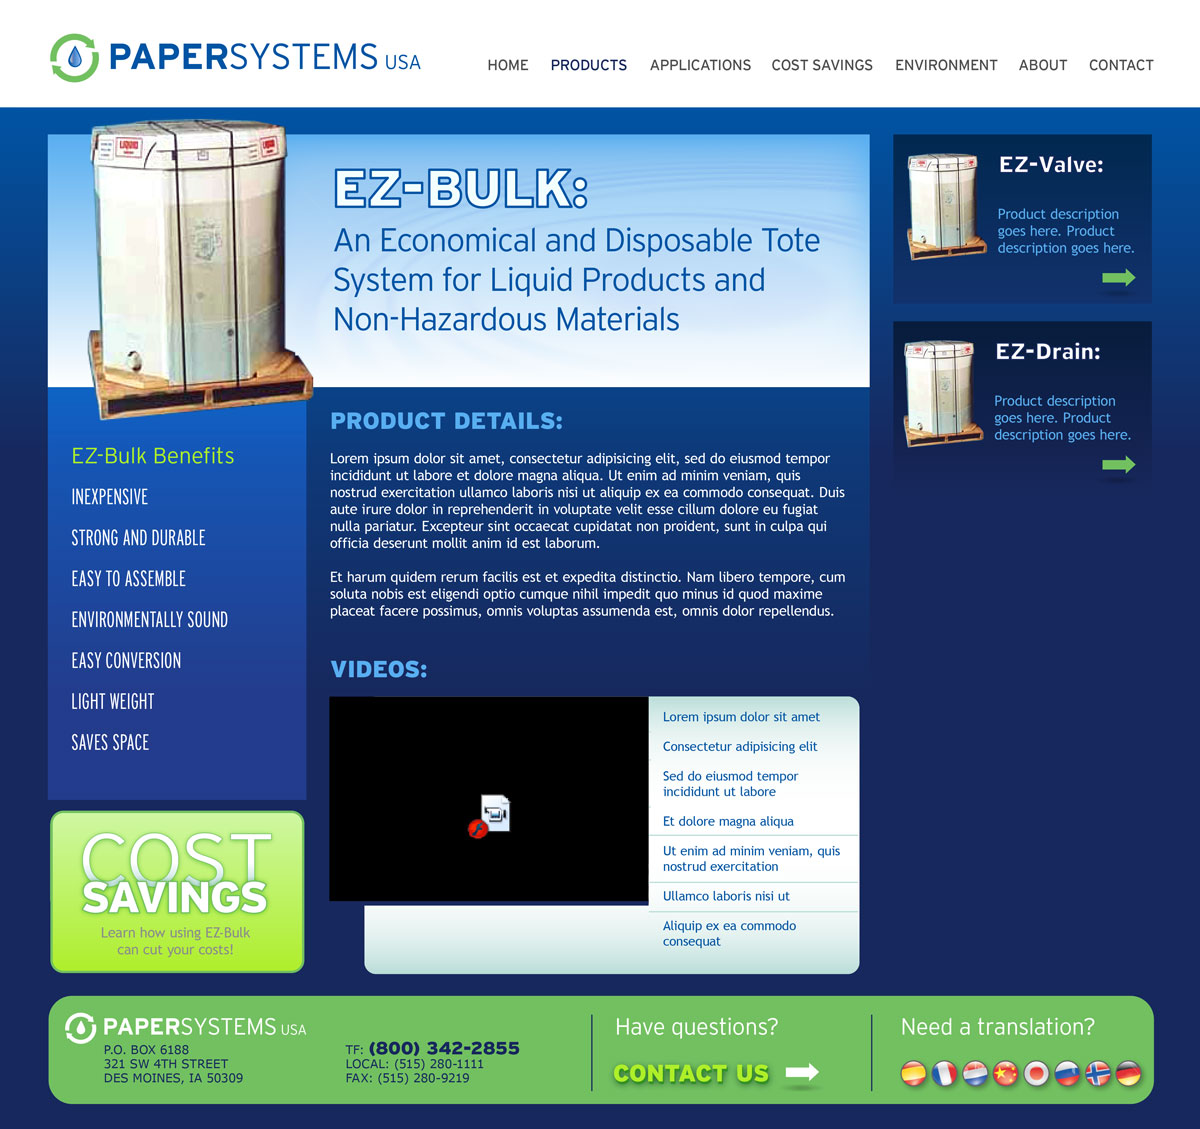 paper_systems_product_info.jpg